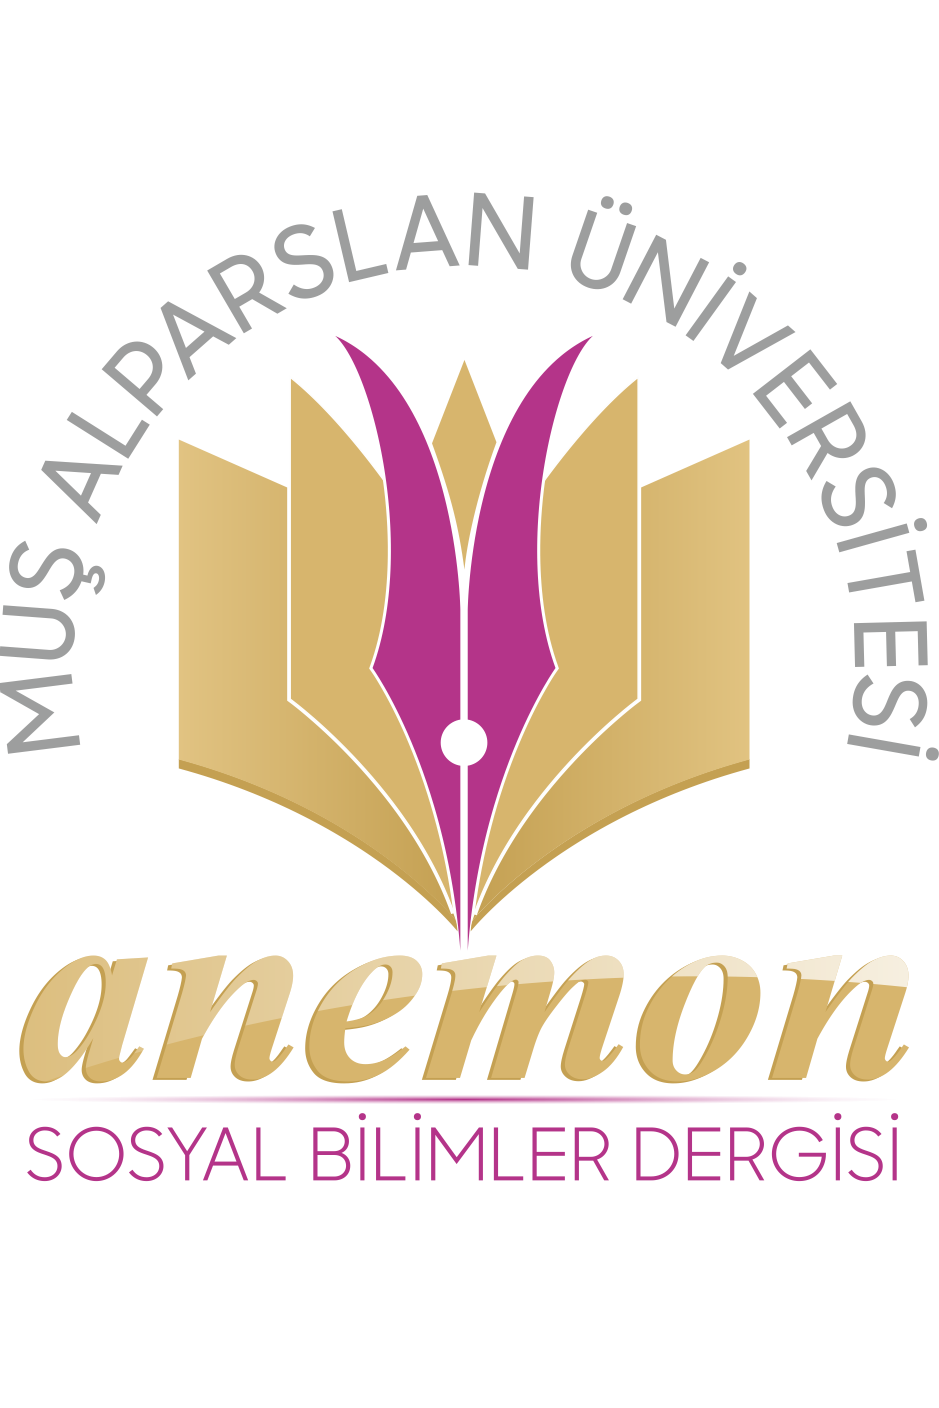 Journal of Social Sciences of Mus Alparslan University